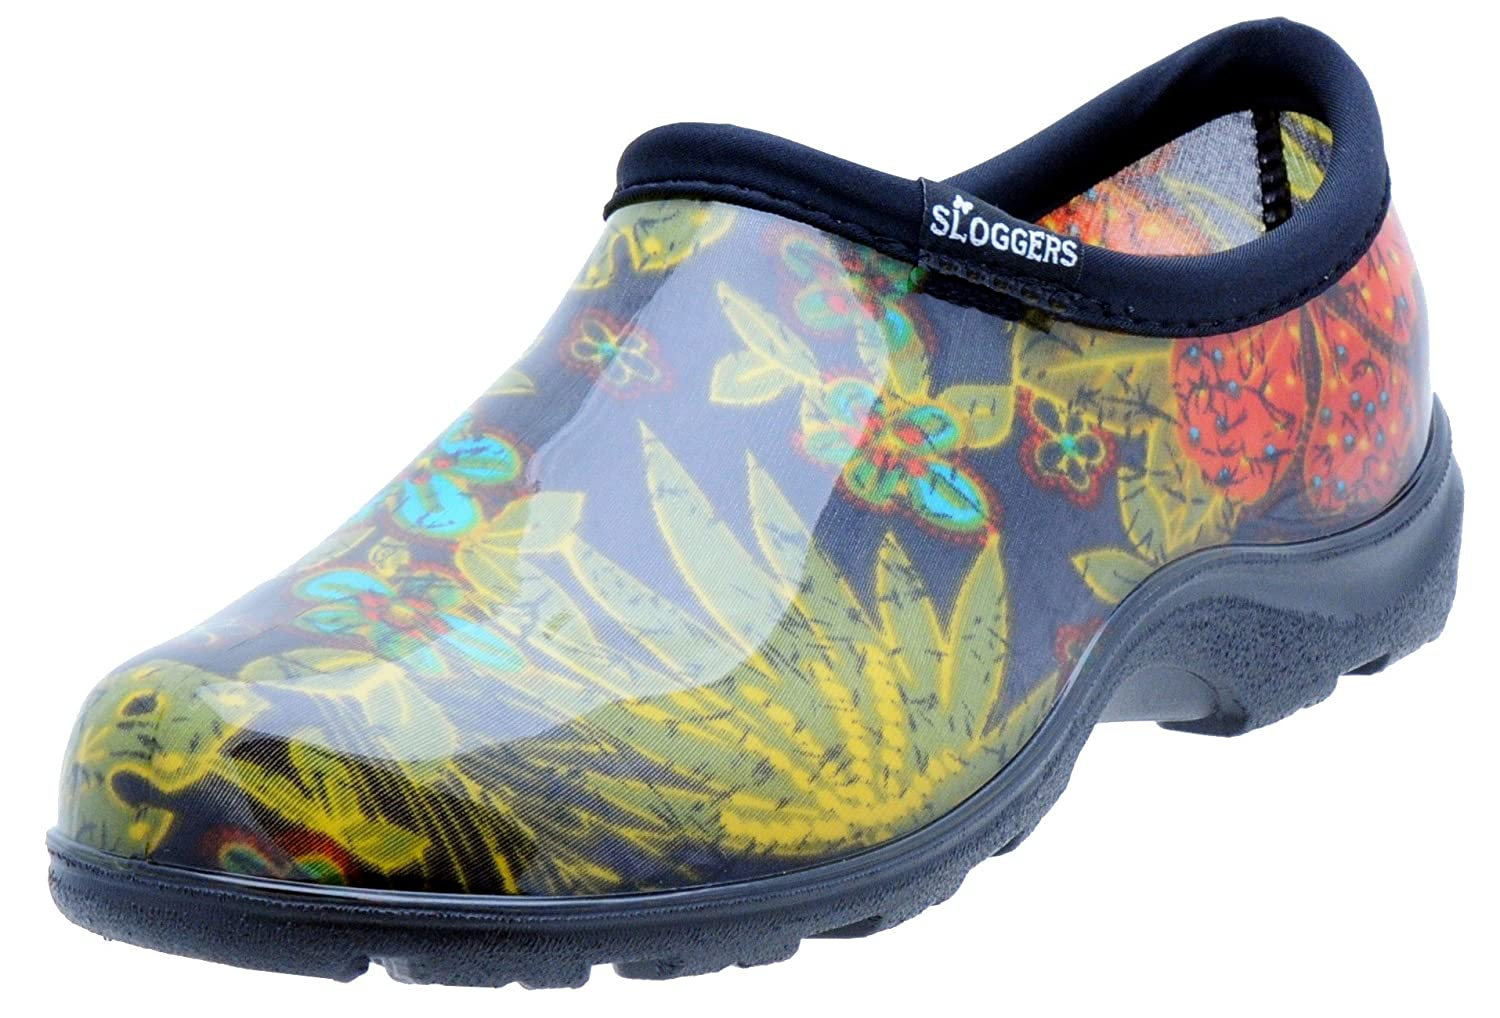 Amazoncom Sloggers Womens Rain and Garden Shoe with All Day